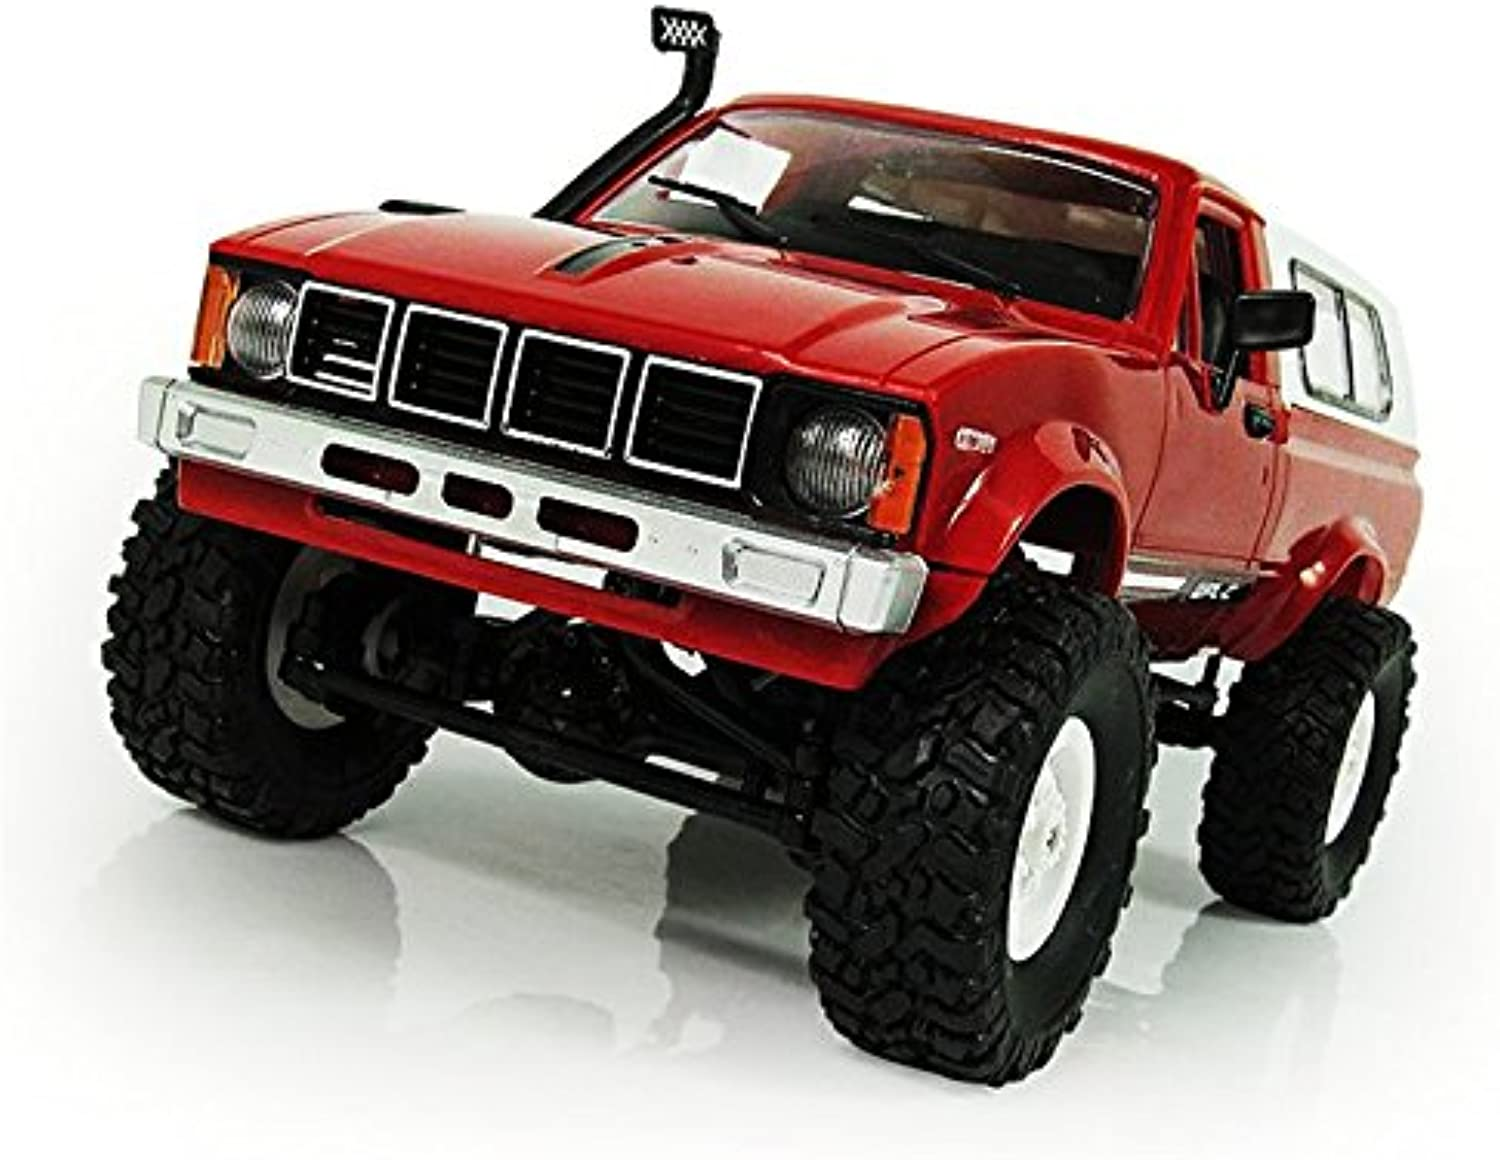 SODIAL WPL C-24 1 16 Scale RC Car Rock Crawler 4WD Off-Road Military Truck Best Toy Red